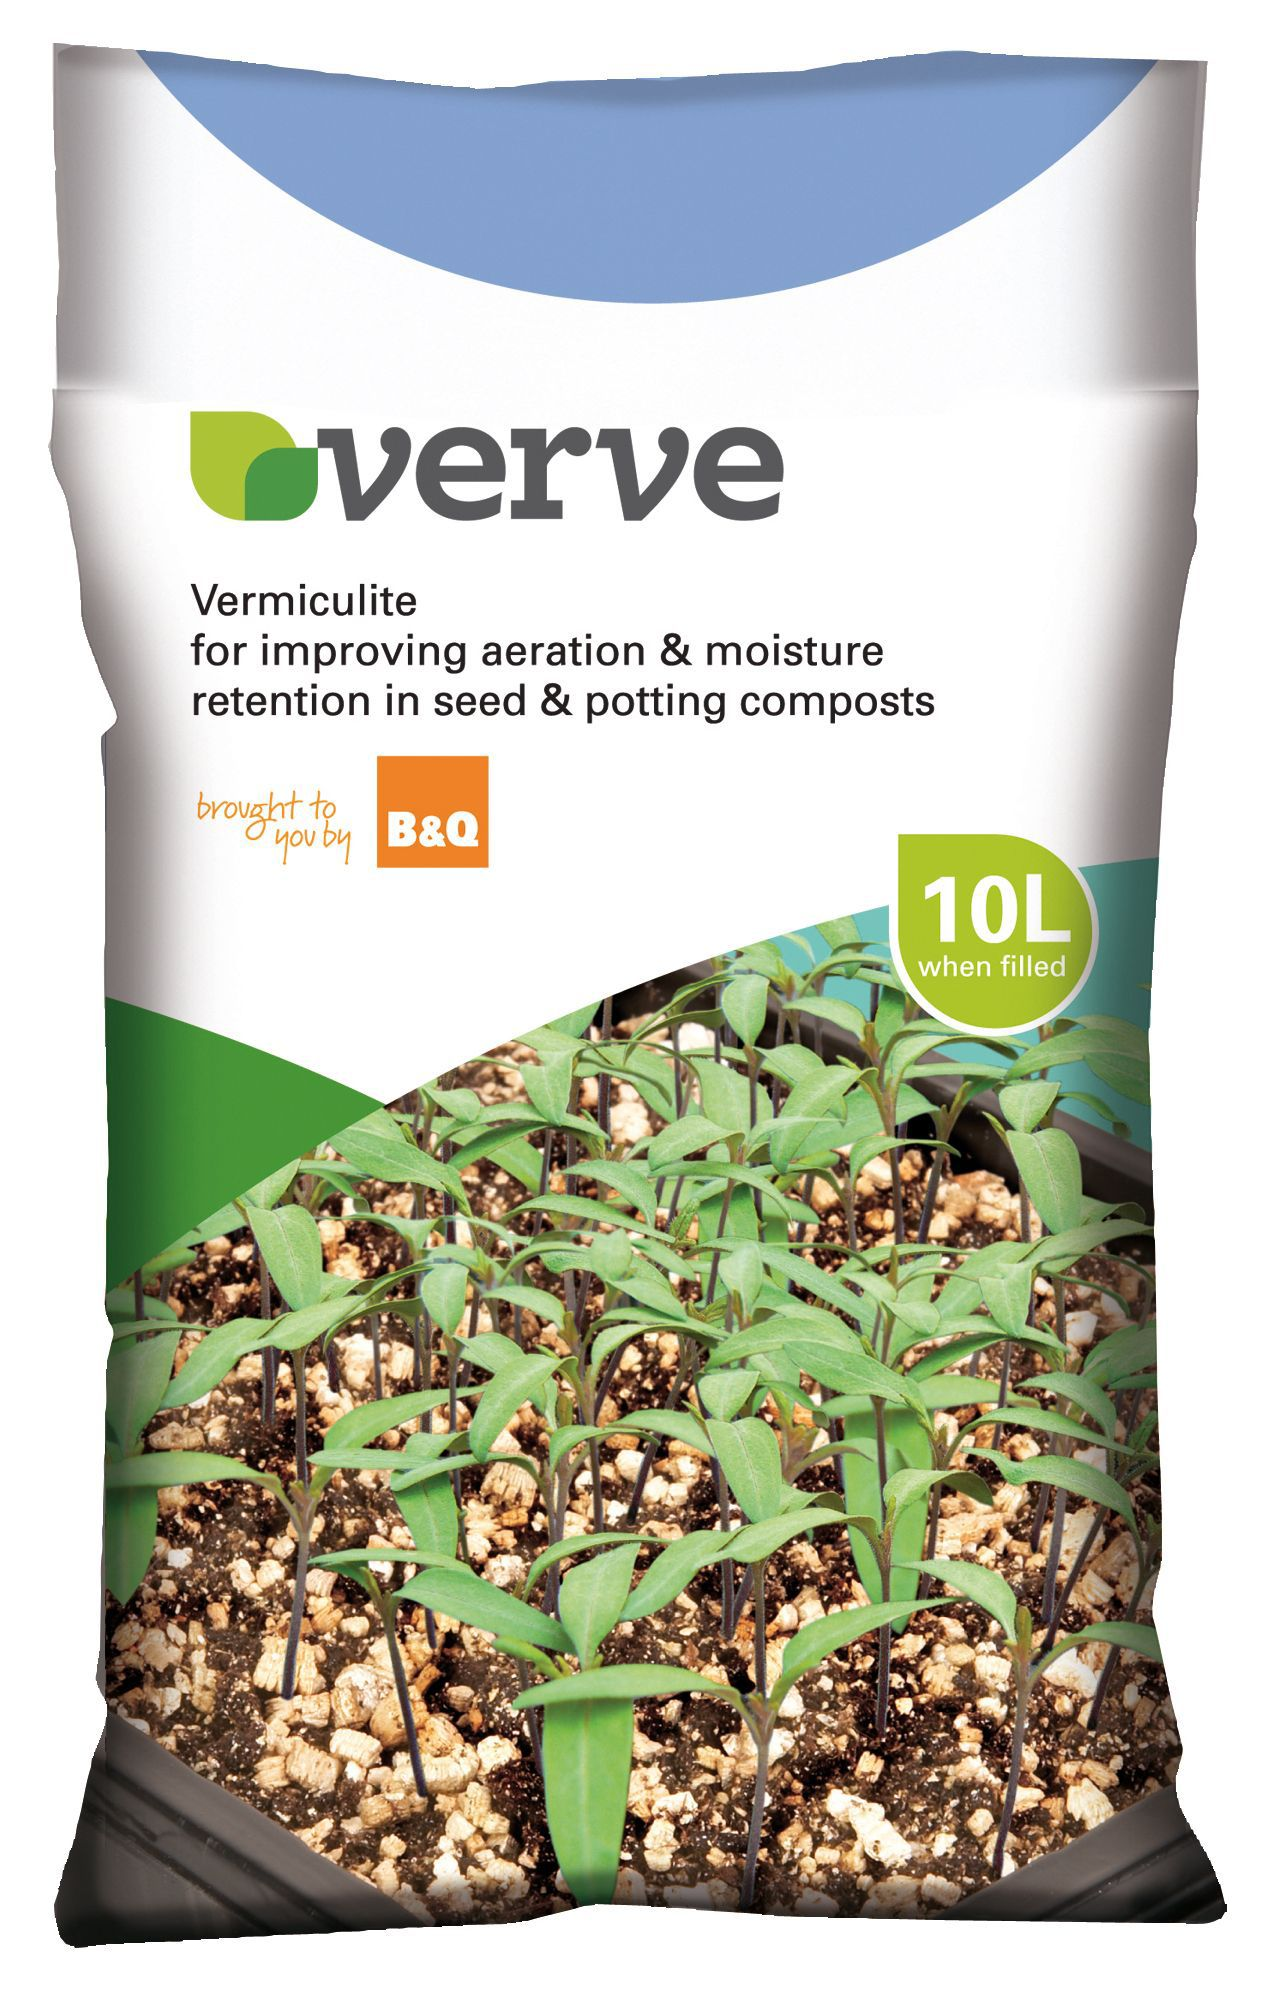 verve vermiculite 10l departments diy at b q. Black Bedroom Furniture Sets. Home Design Ideas